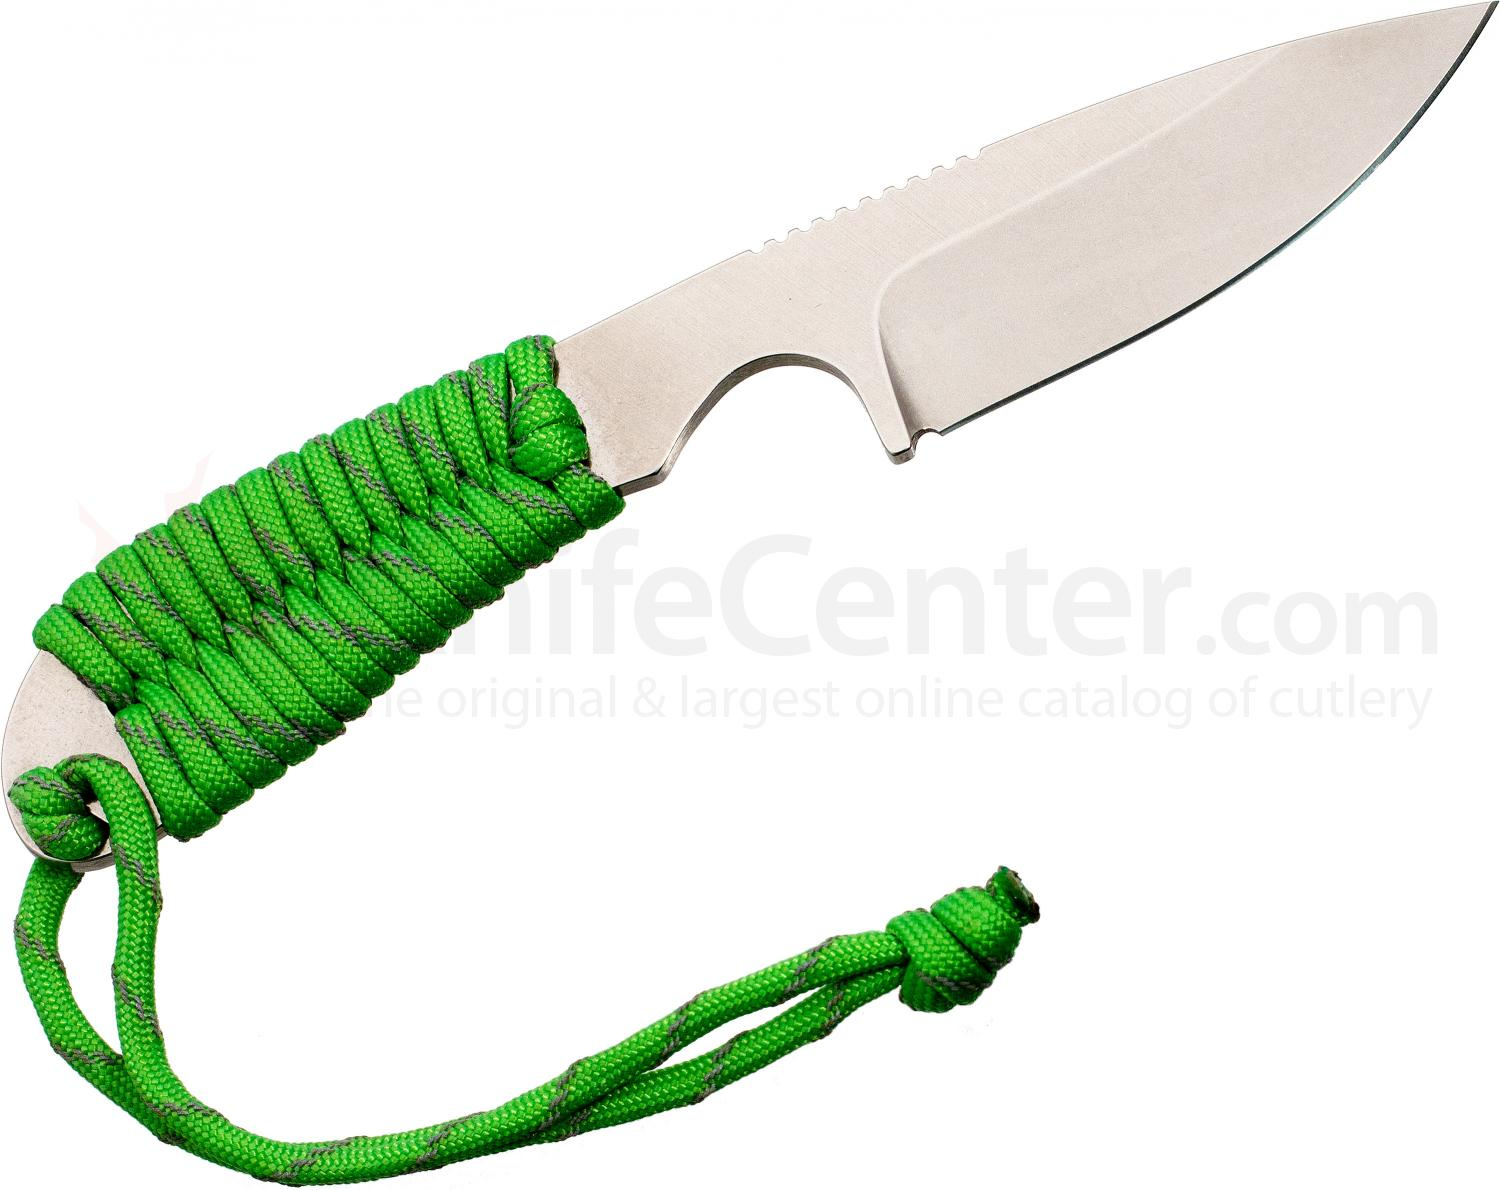 White River Knives Backpacker Fixed 3.25 inch S30V Blade, Reflective Neon Green Paracord Handle, Kydex Sheath